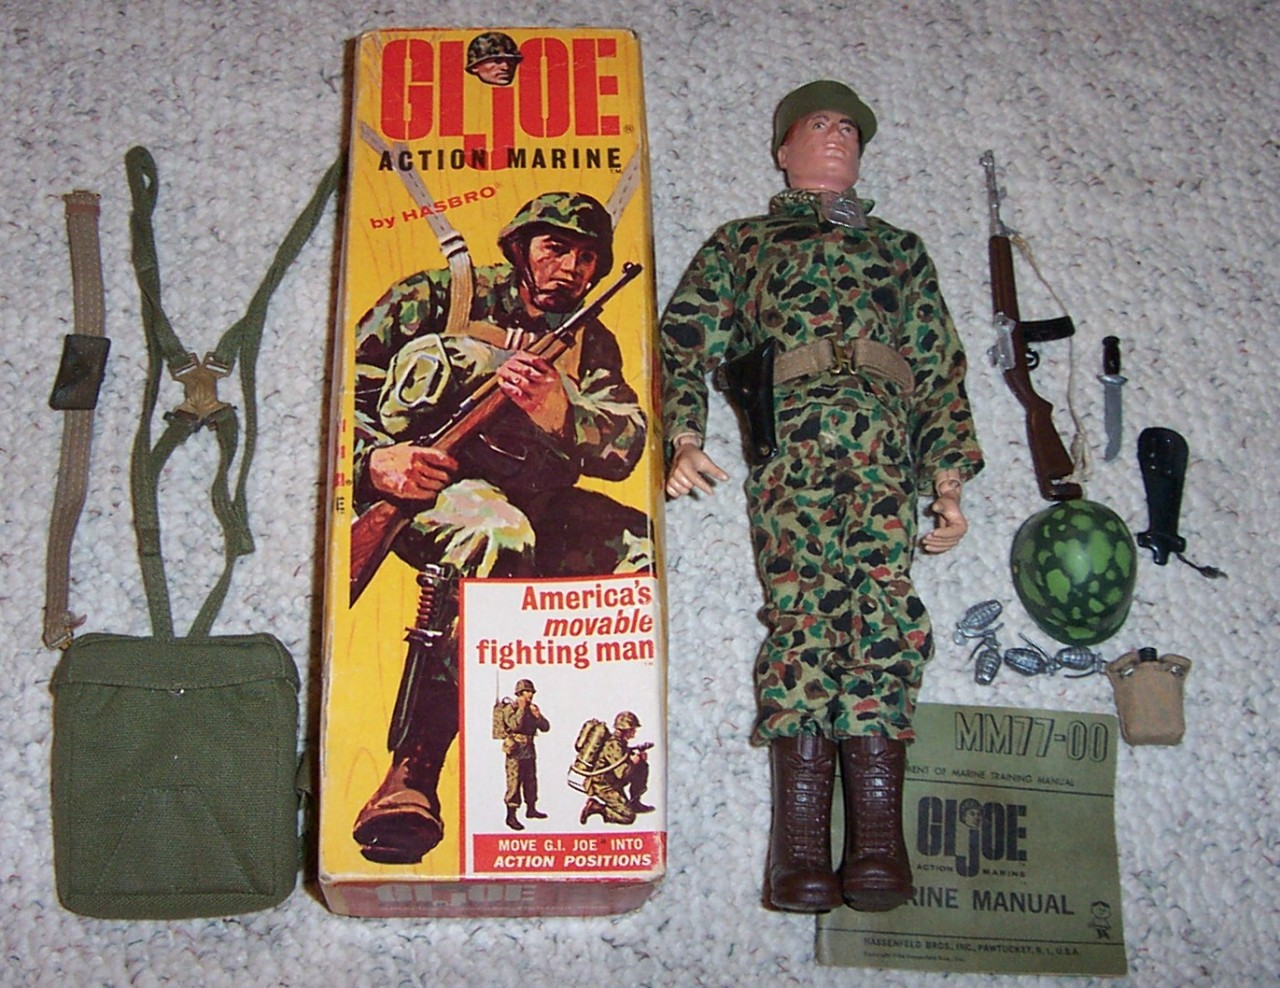 Later, I had one of those wussy, non-violent Adventure Team figures, but we don't talk about that.